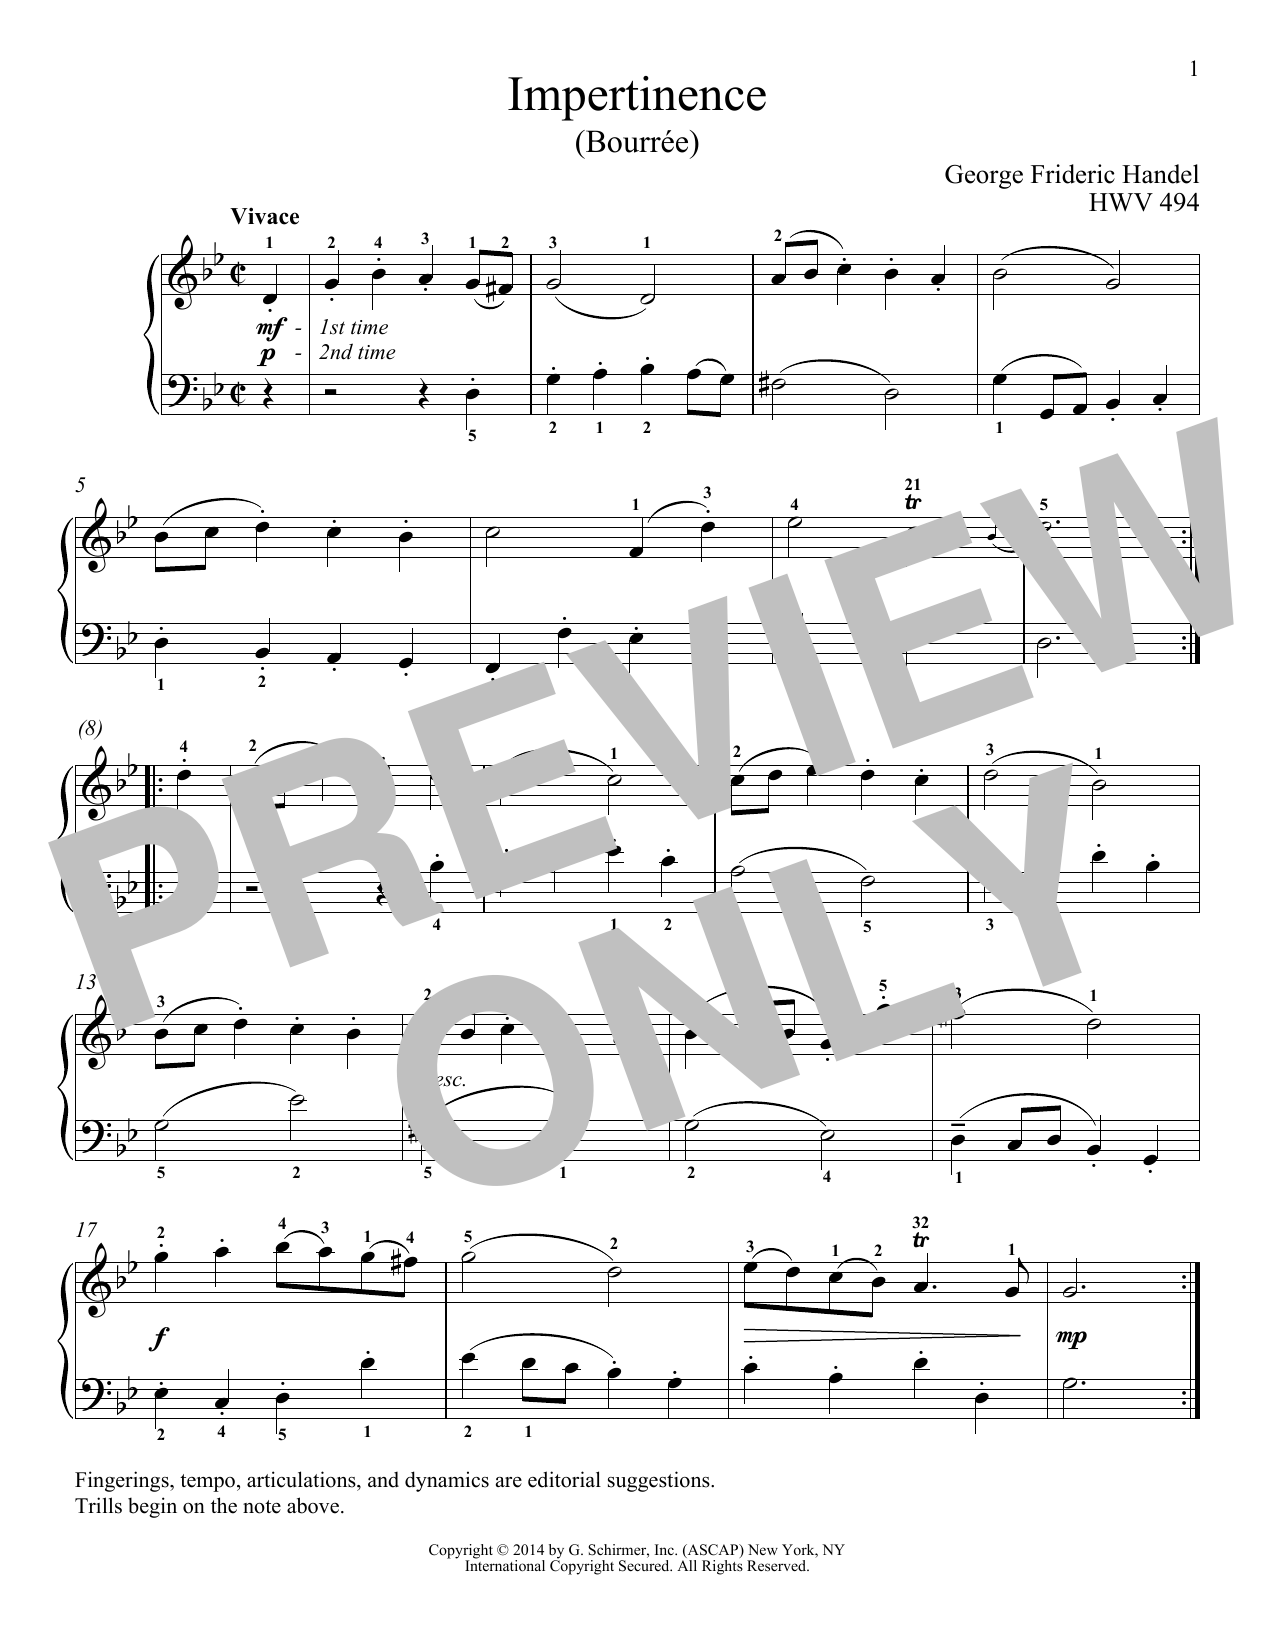 George Frideric Handel Impertinence, HWV 494 sheet music notes and chords